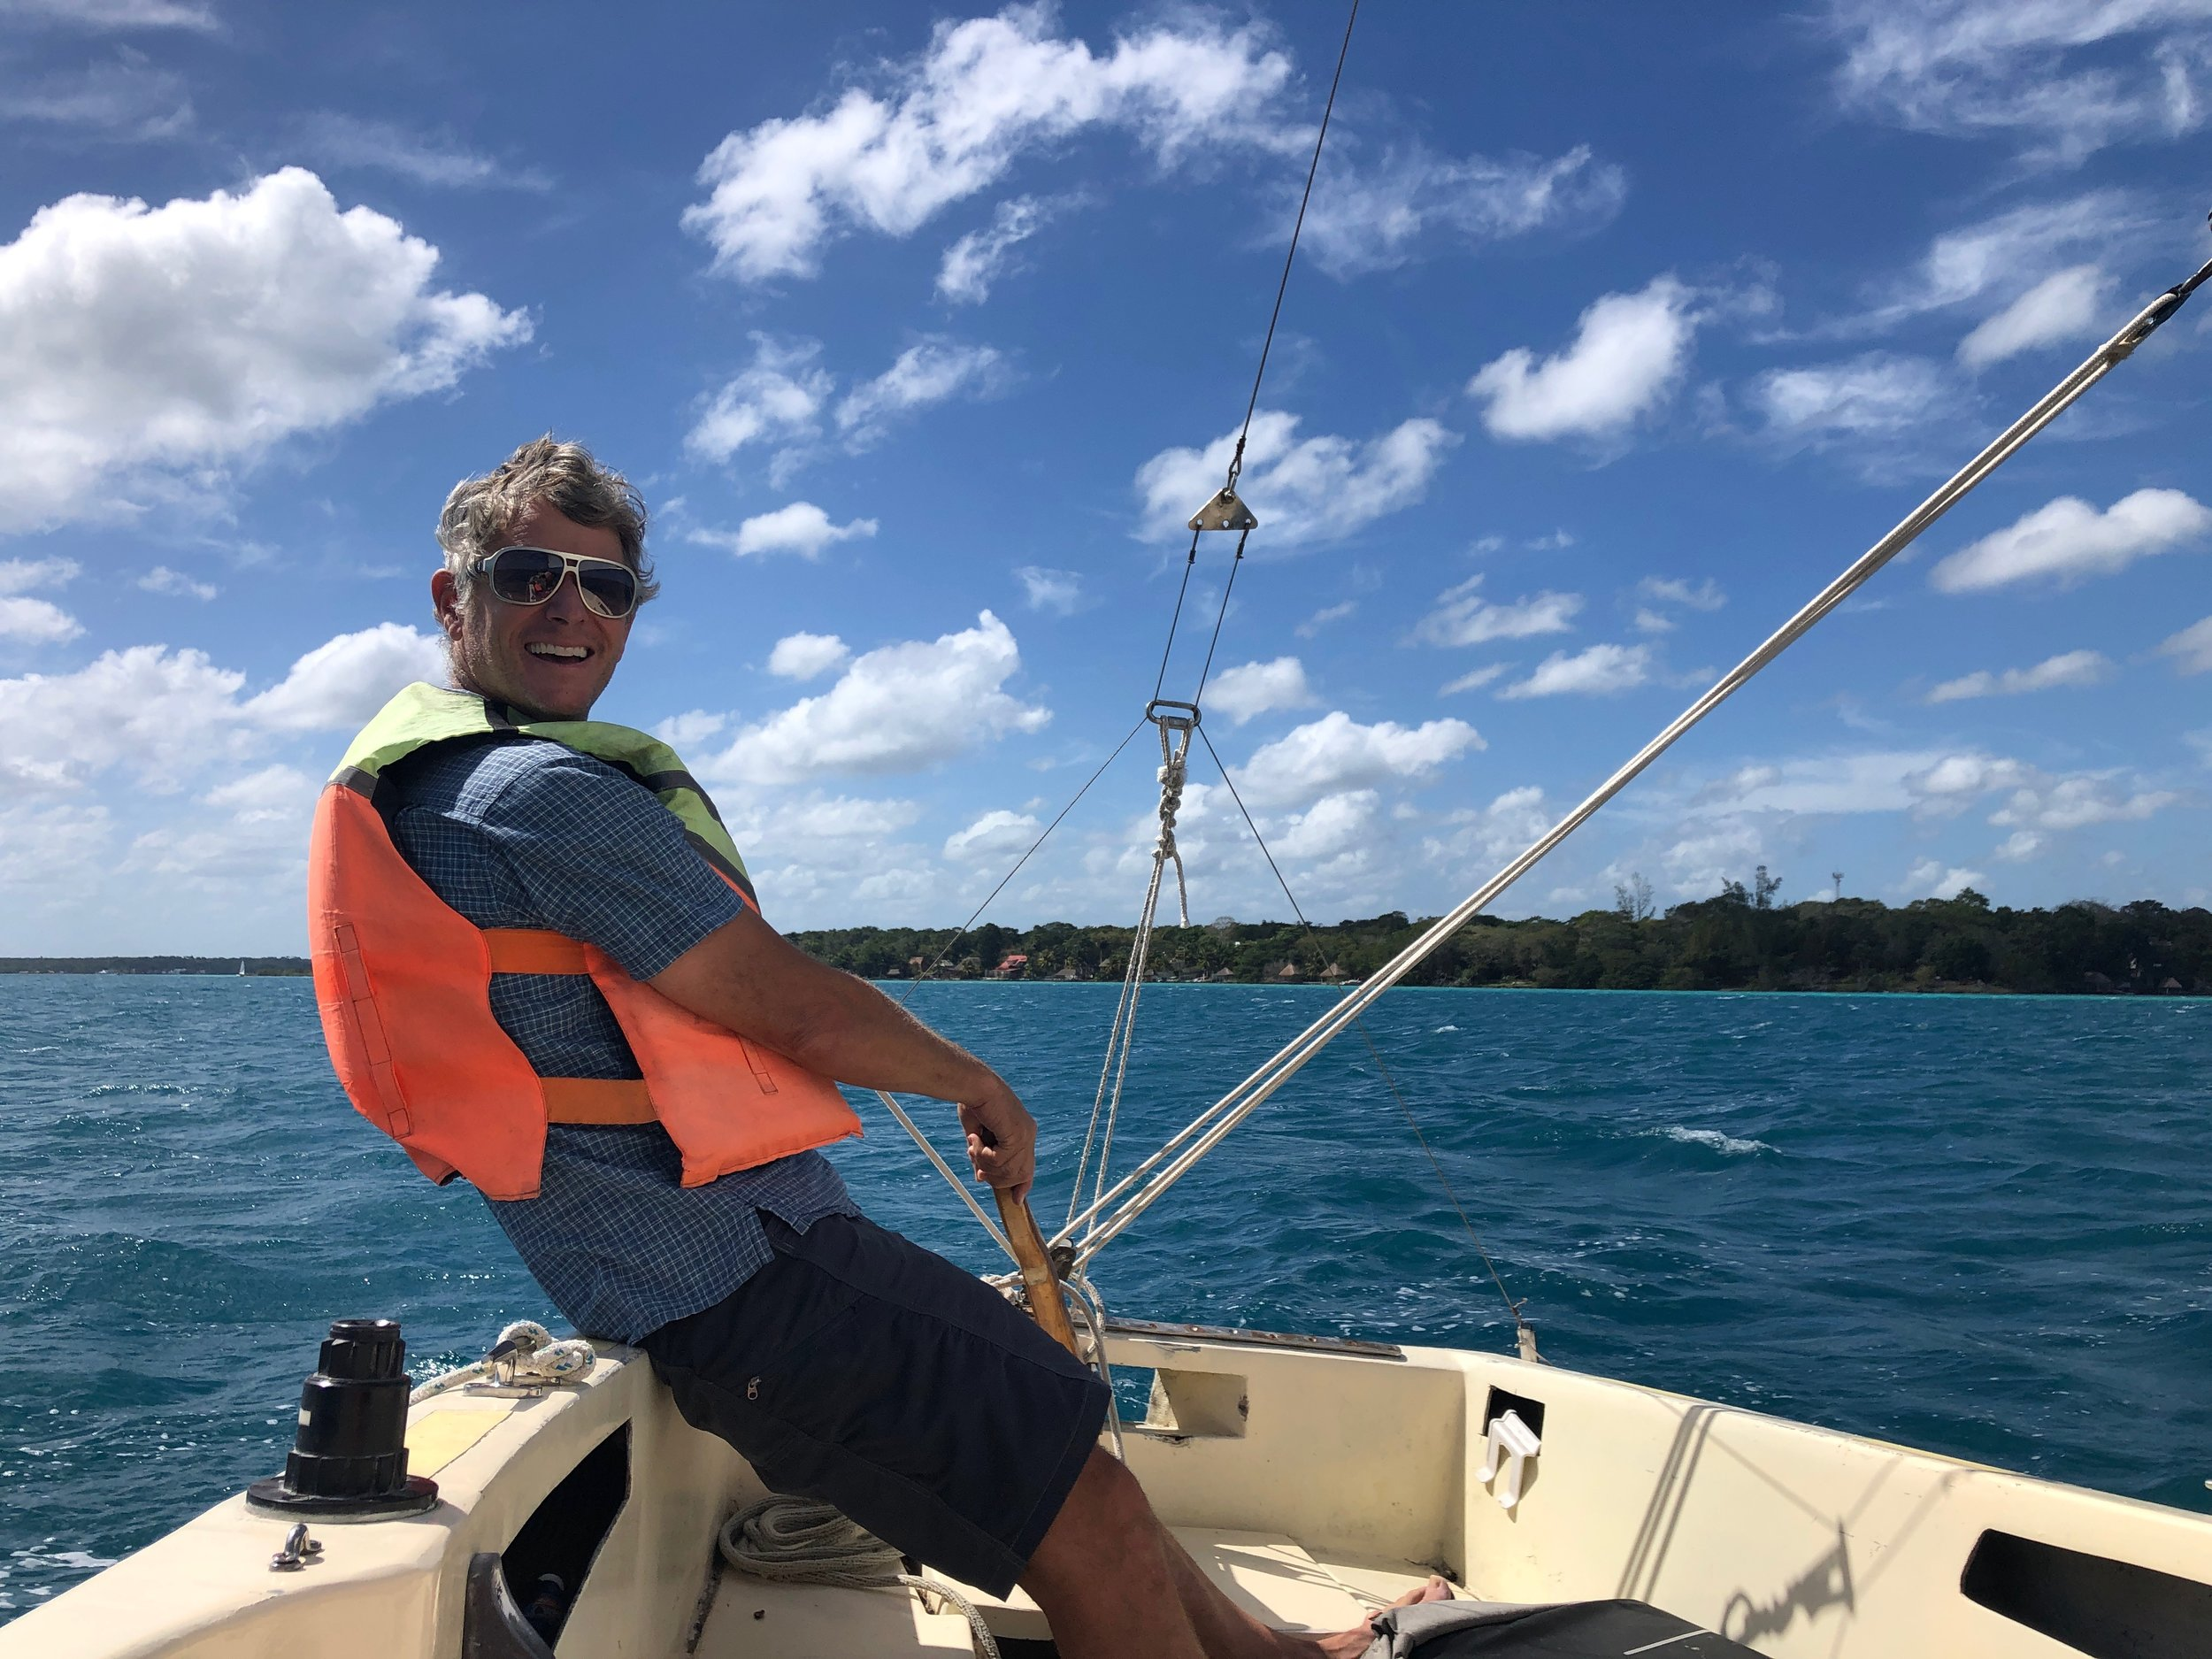 The wind was great for sailing and John got to take the helm for a while